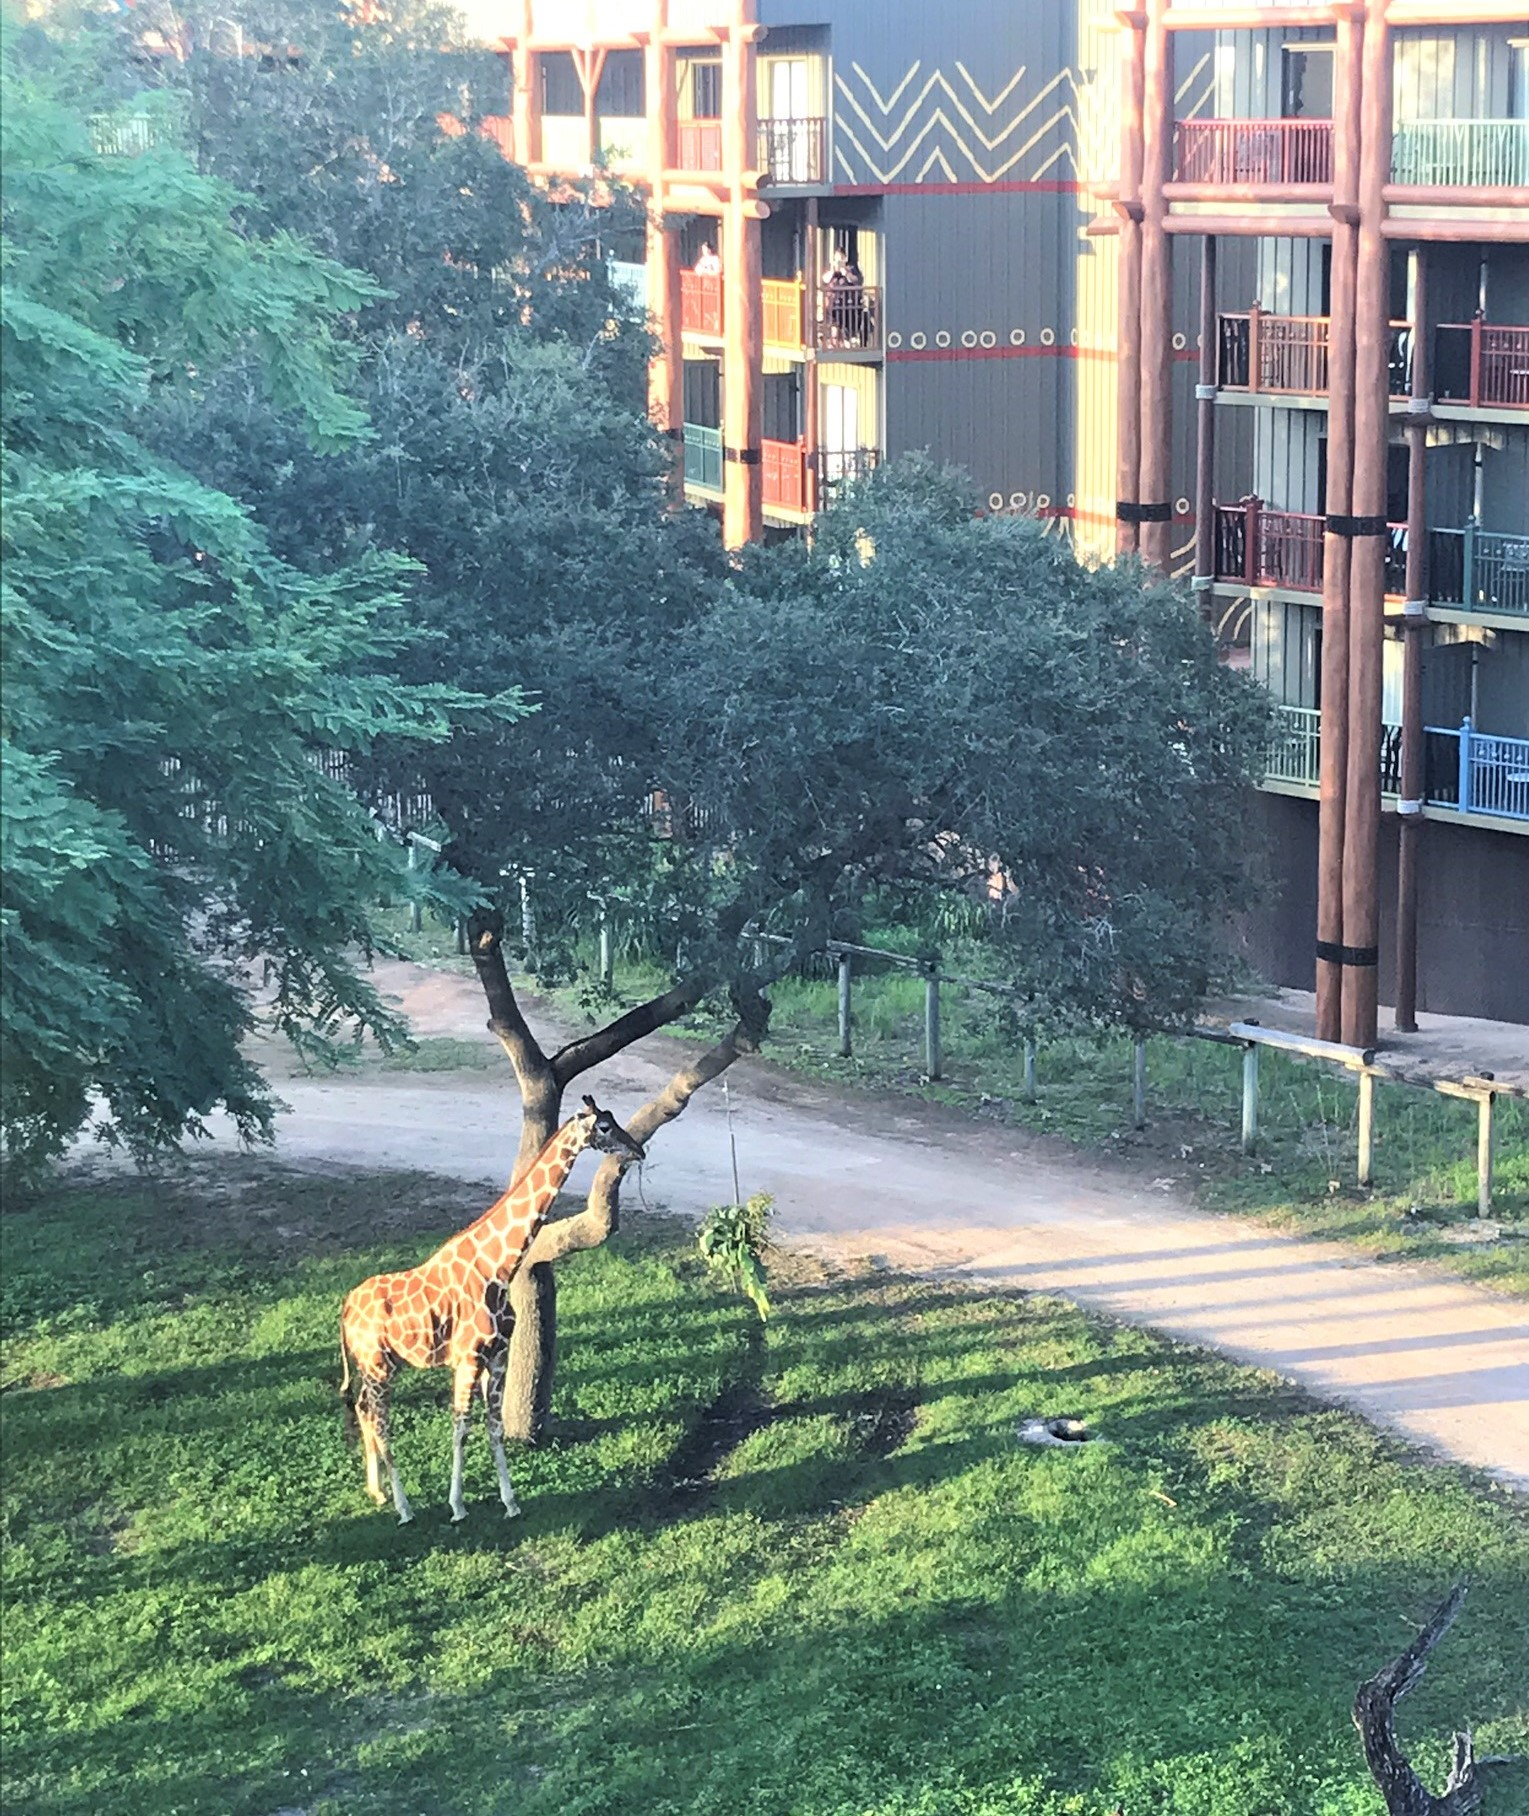 giraffe eating leaves at animal kingdom lodge